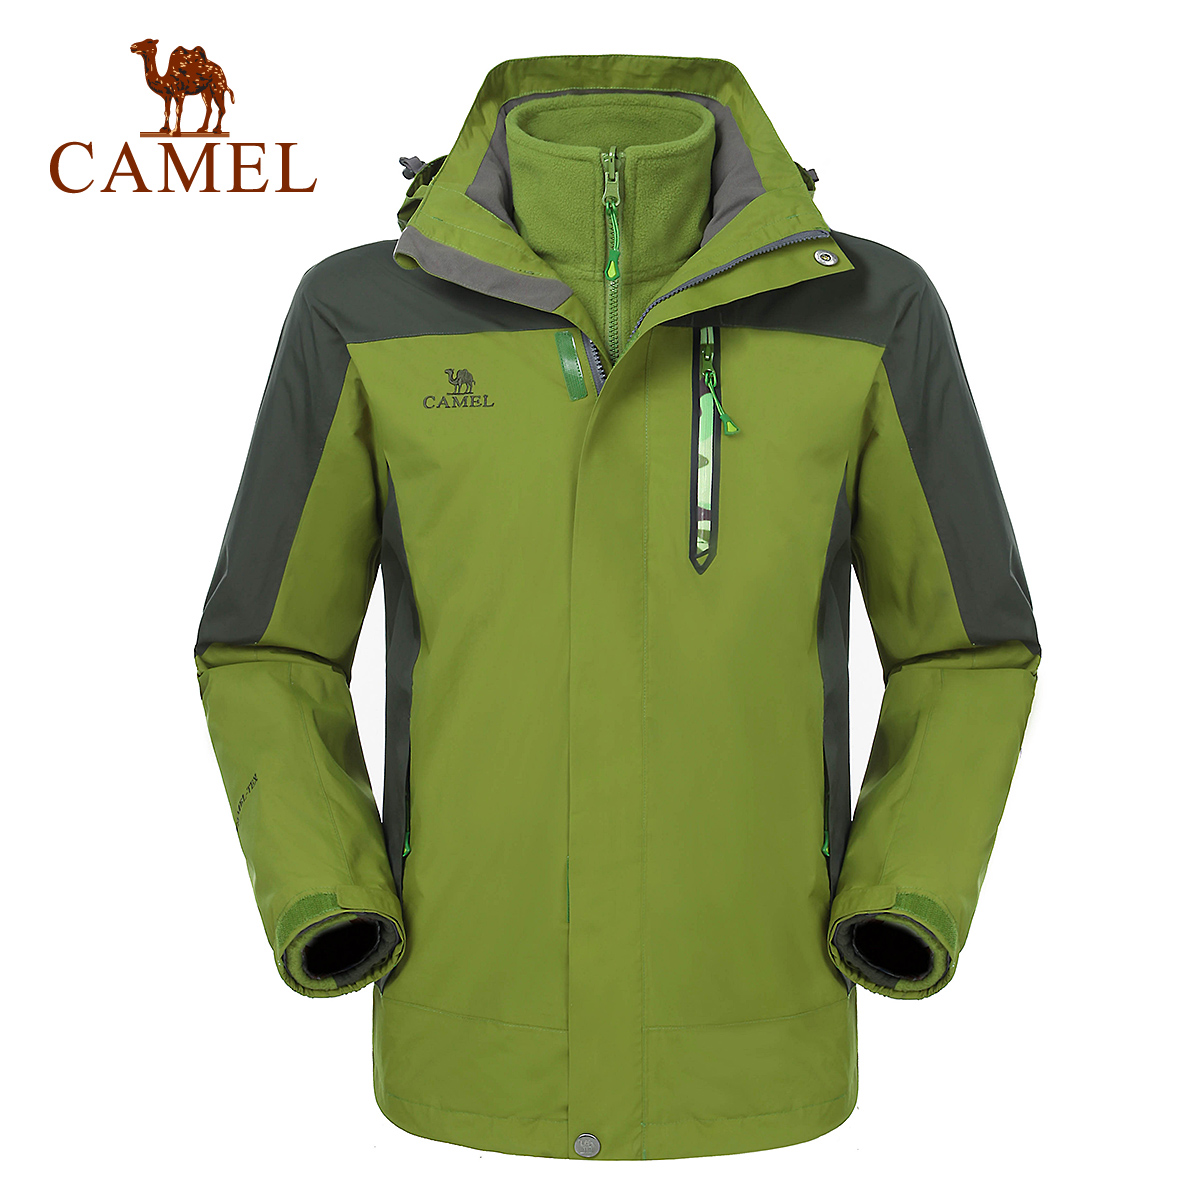 Camel camel outdoor jackets mens waterproof windproof warm piece triple jackets